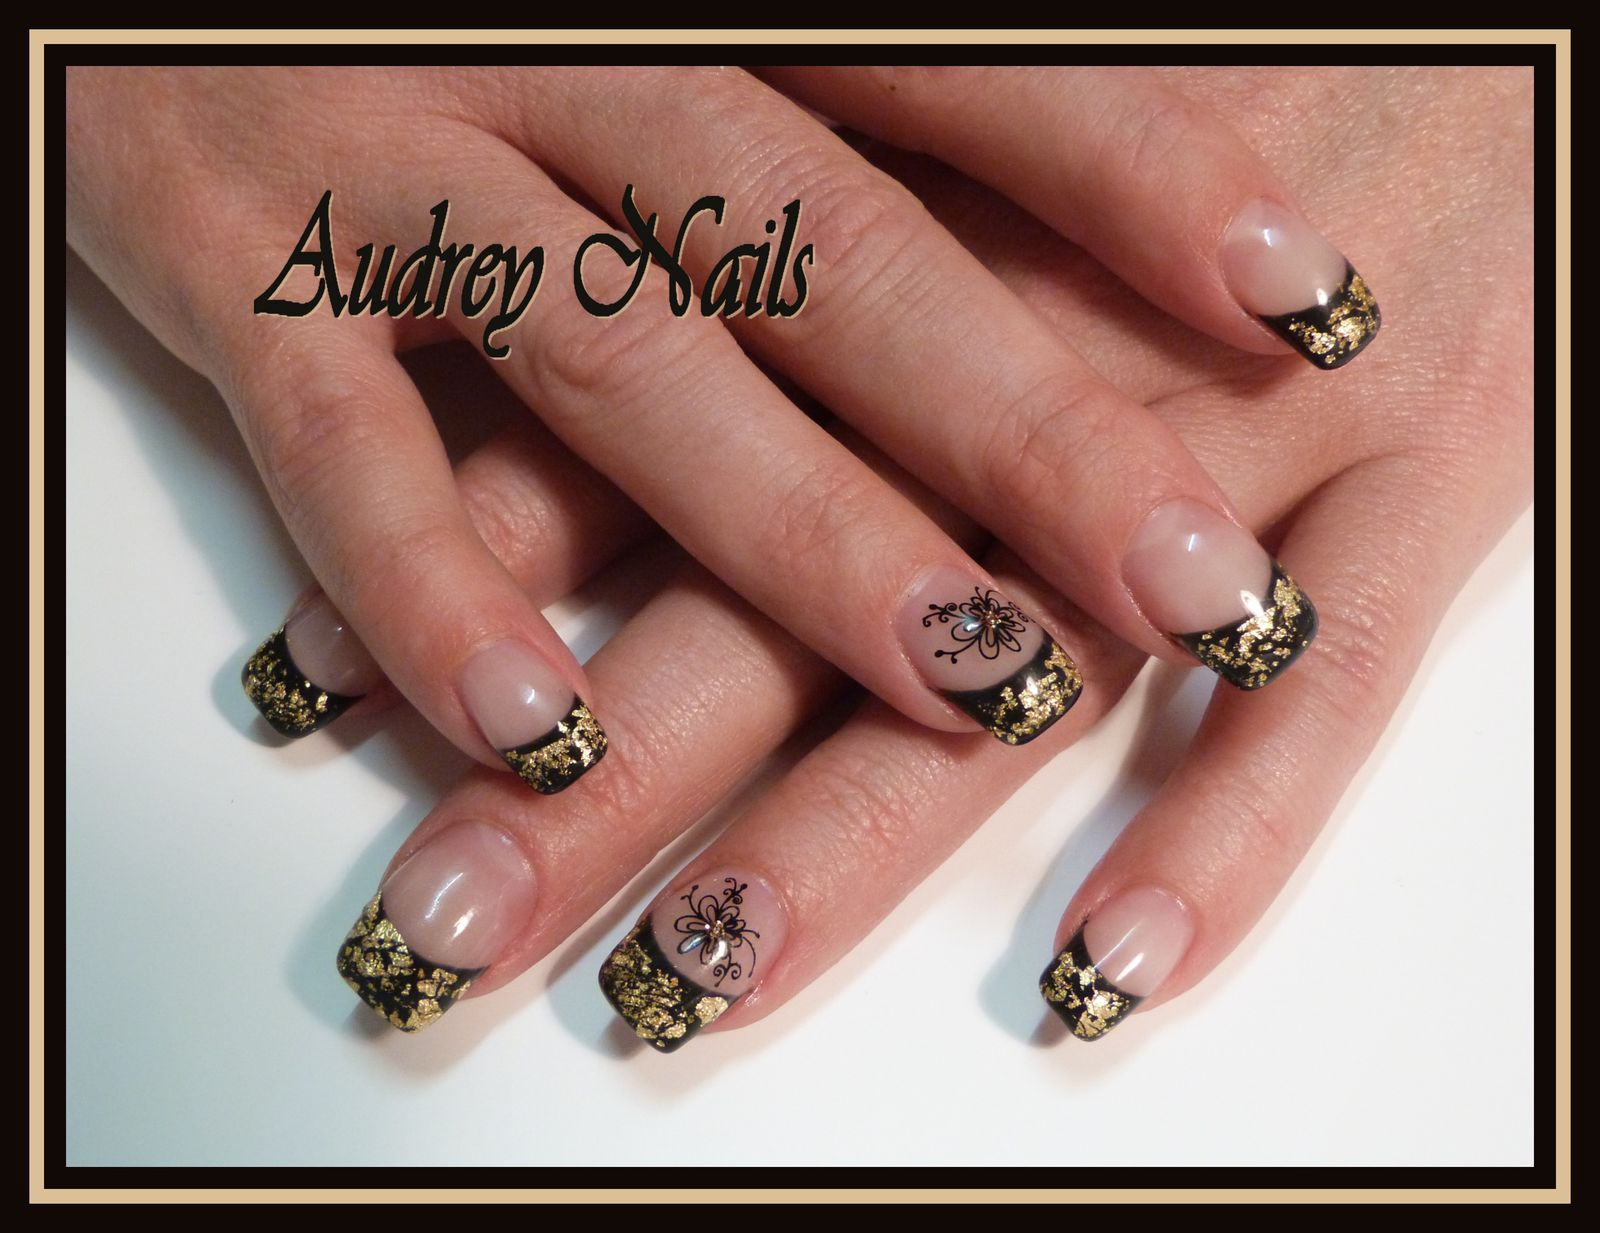 French noire + feuilles d'or + stamping